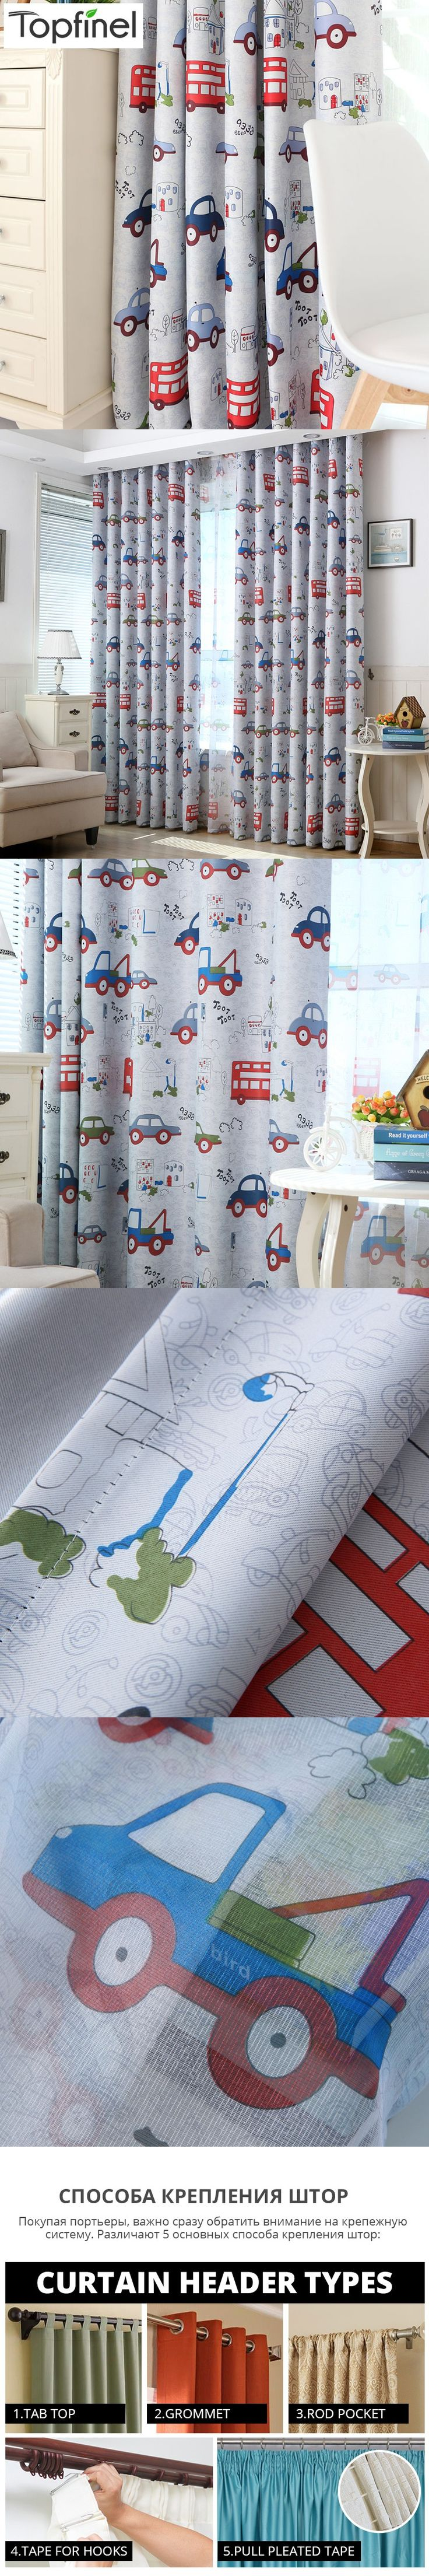 Kid car curtains - Top Finel Cartoon Car Curtains For Living Room Bedroom Lovely Children Curtains Decorative Curtains For Kids Baby Room Drapes